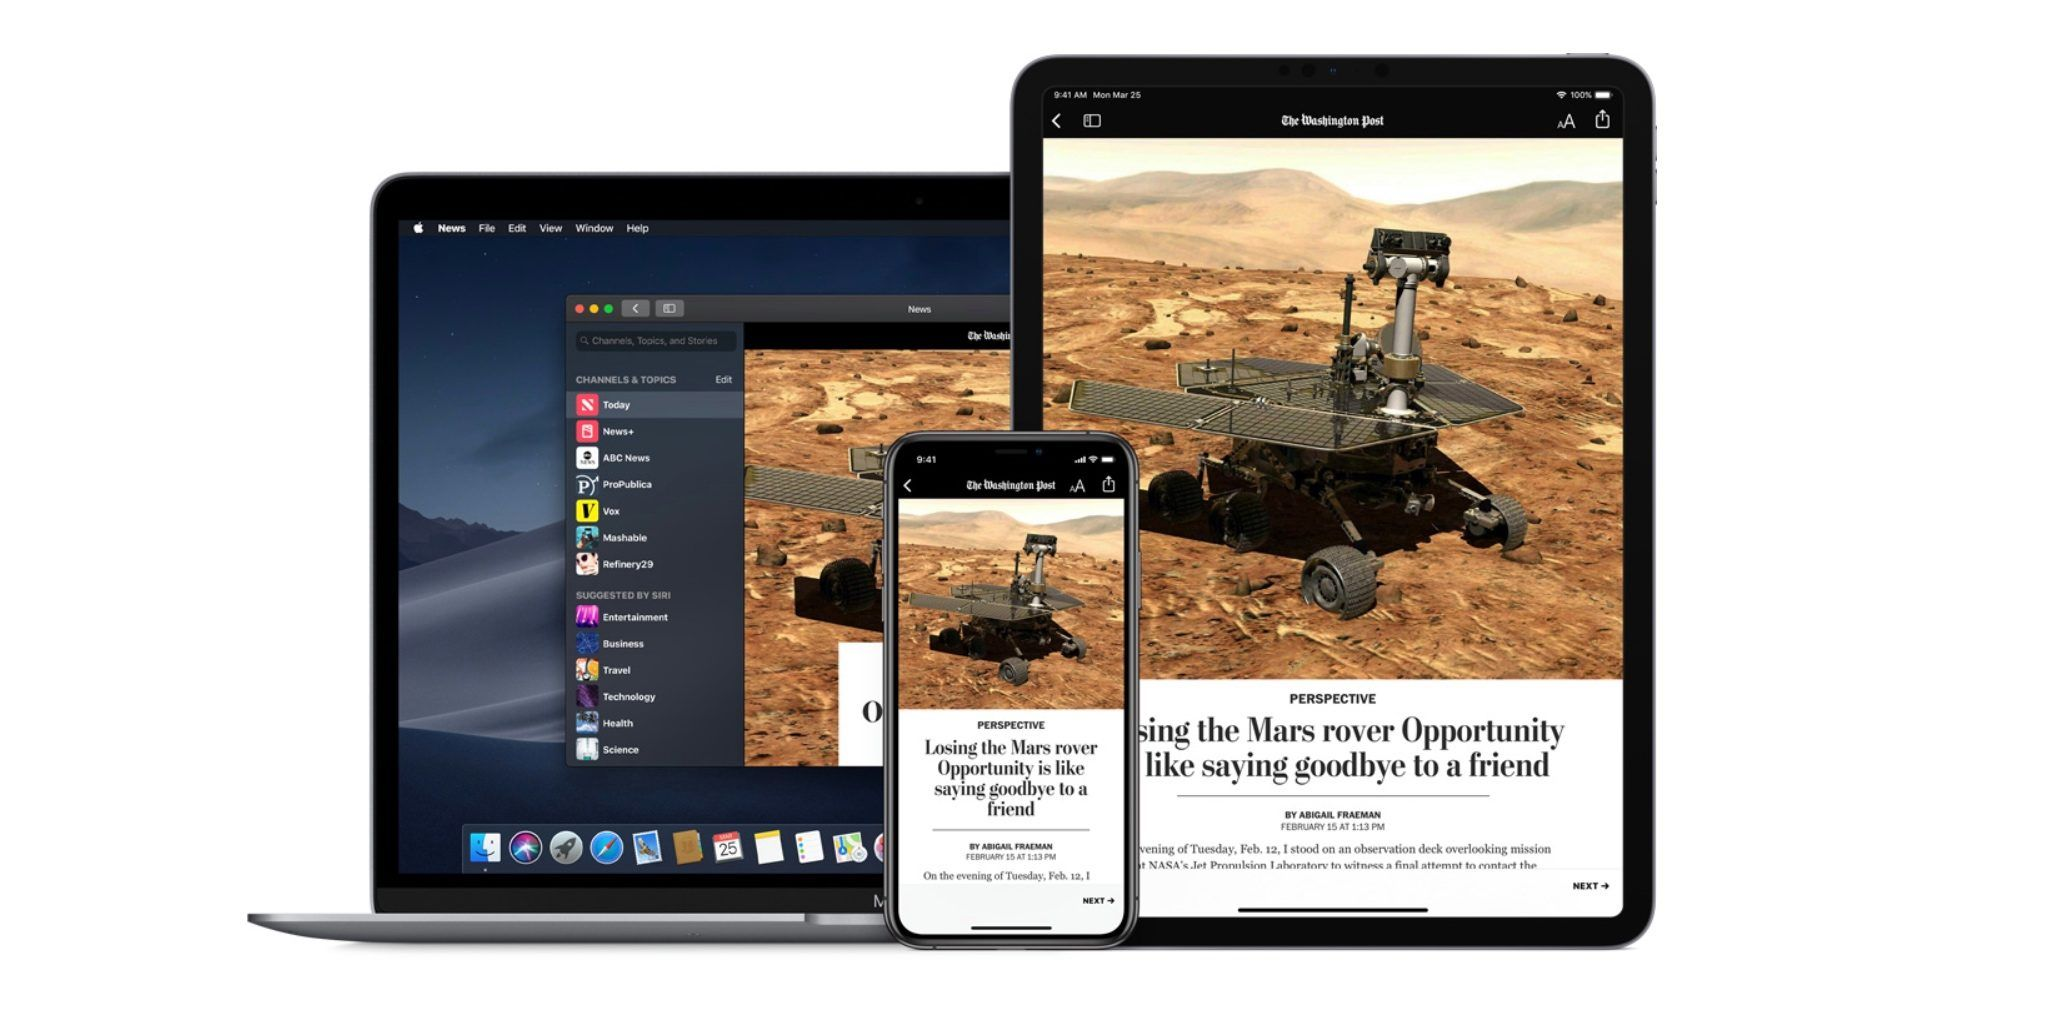 Apple News App Crashing For Many Iphone And Ipad Users After Updating To Ios 12 2 Apple Working On Fix Apple News New Gadgets New Ios